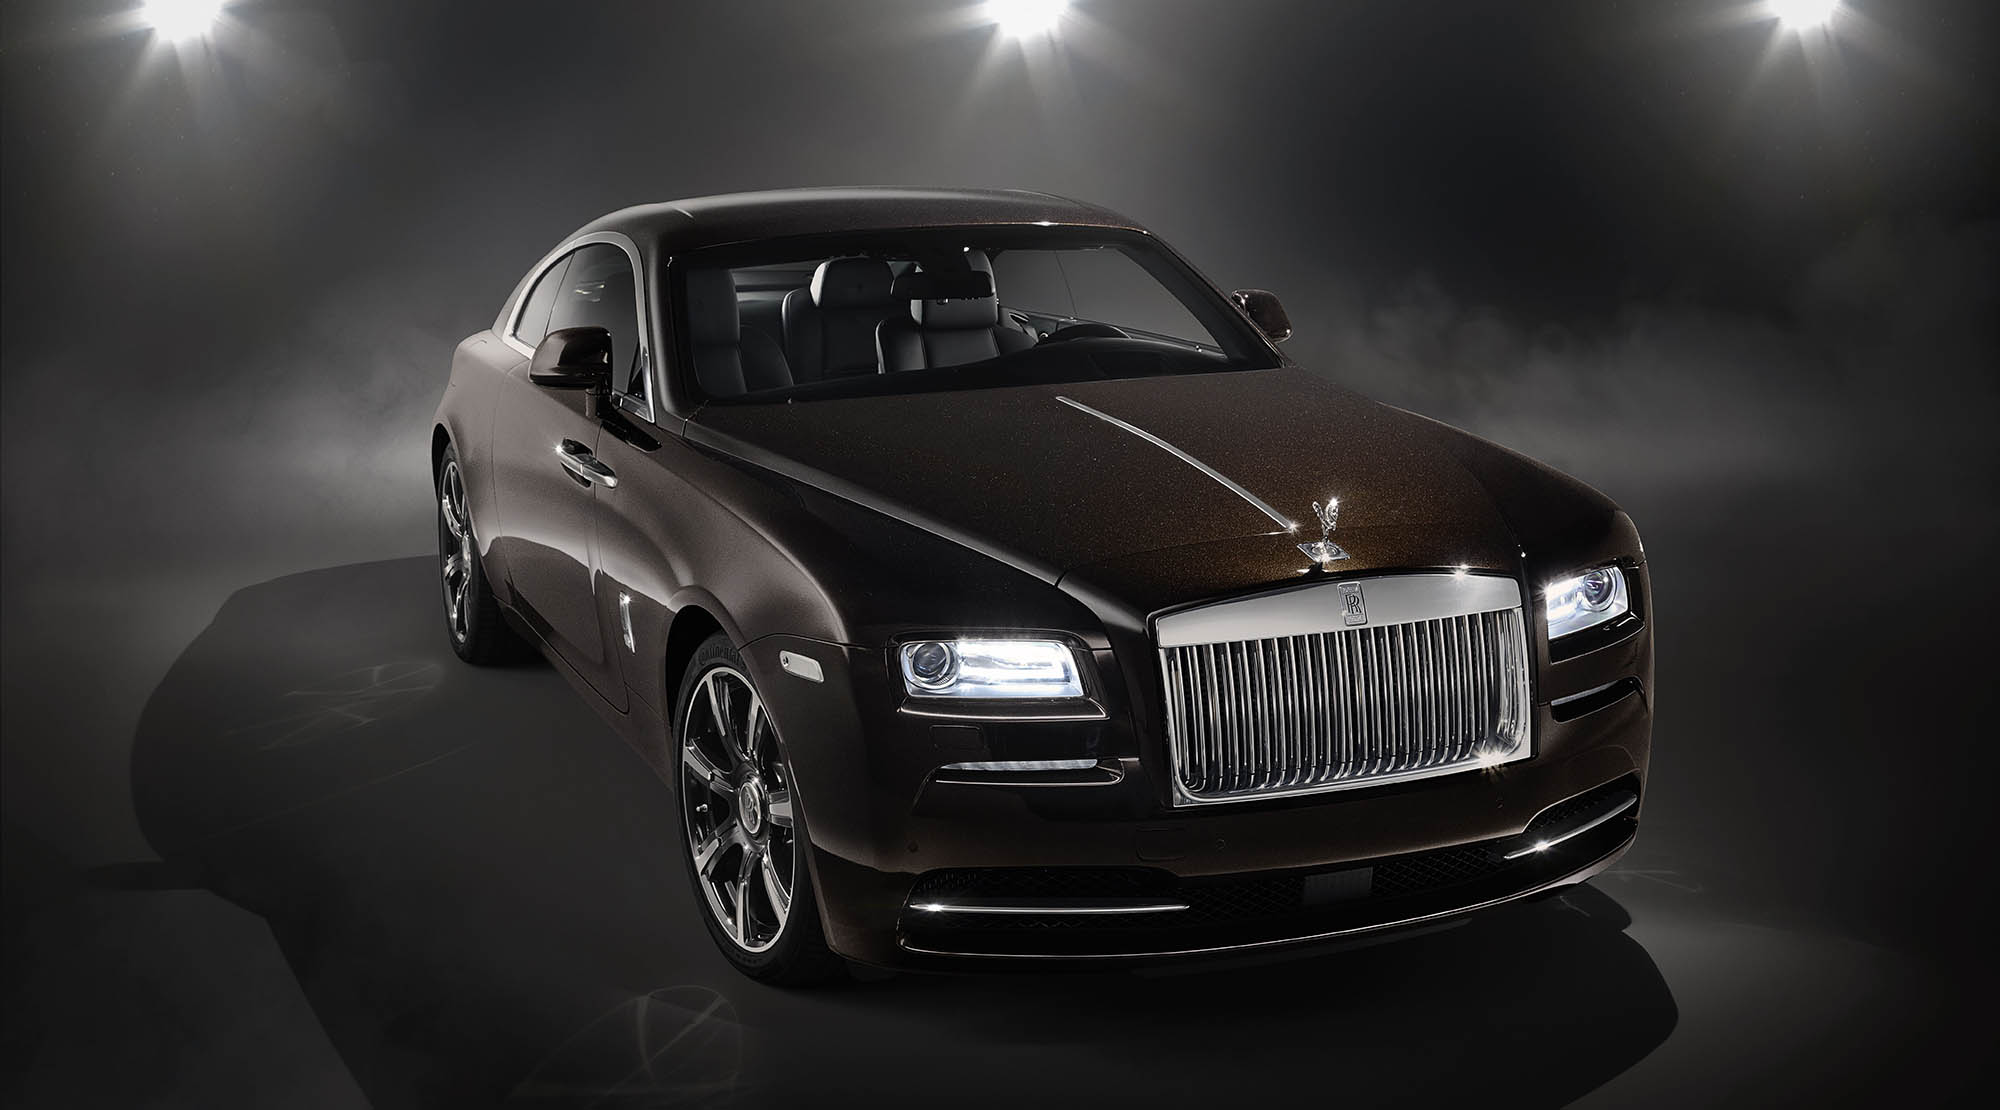 Rolls-Royce Turns To Music For Inspiration On Latest Wraith Special